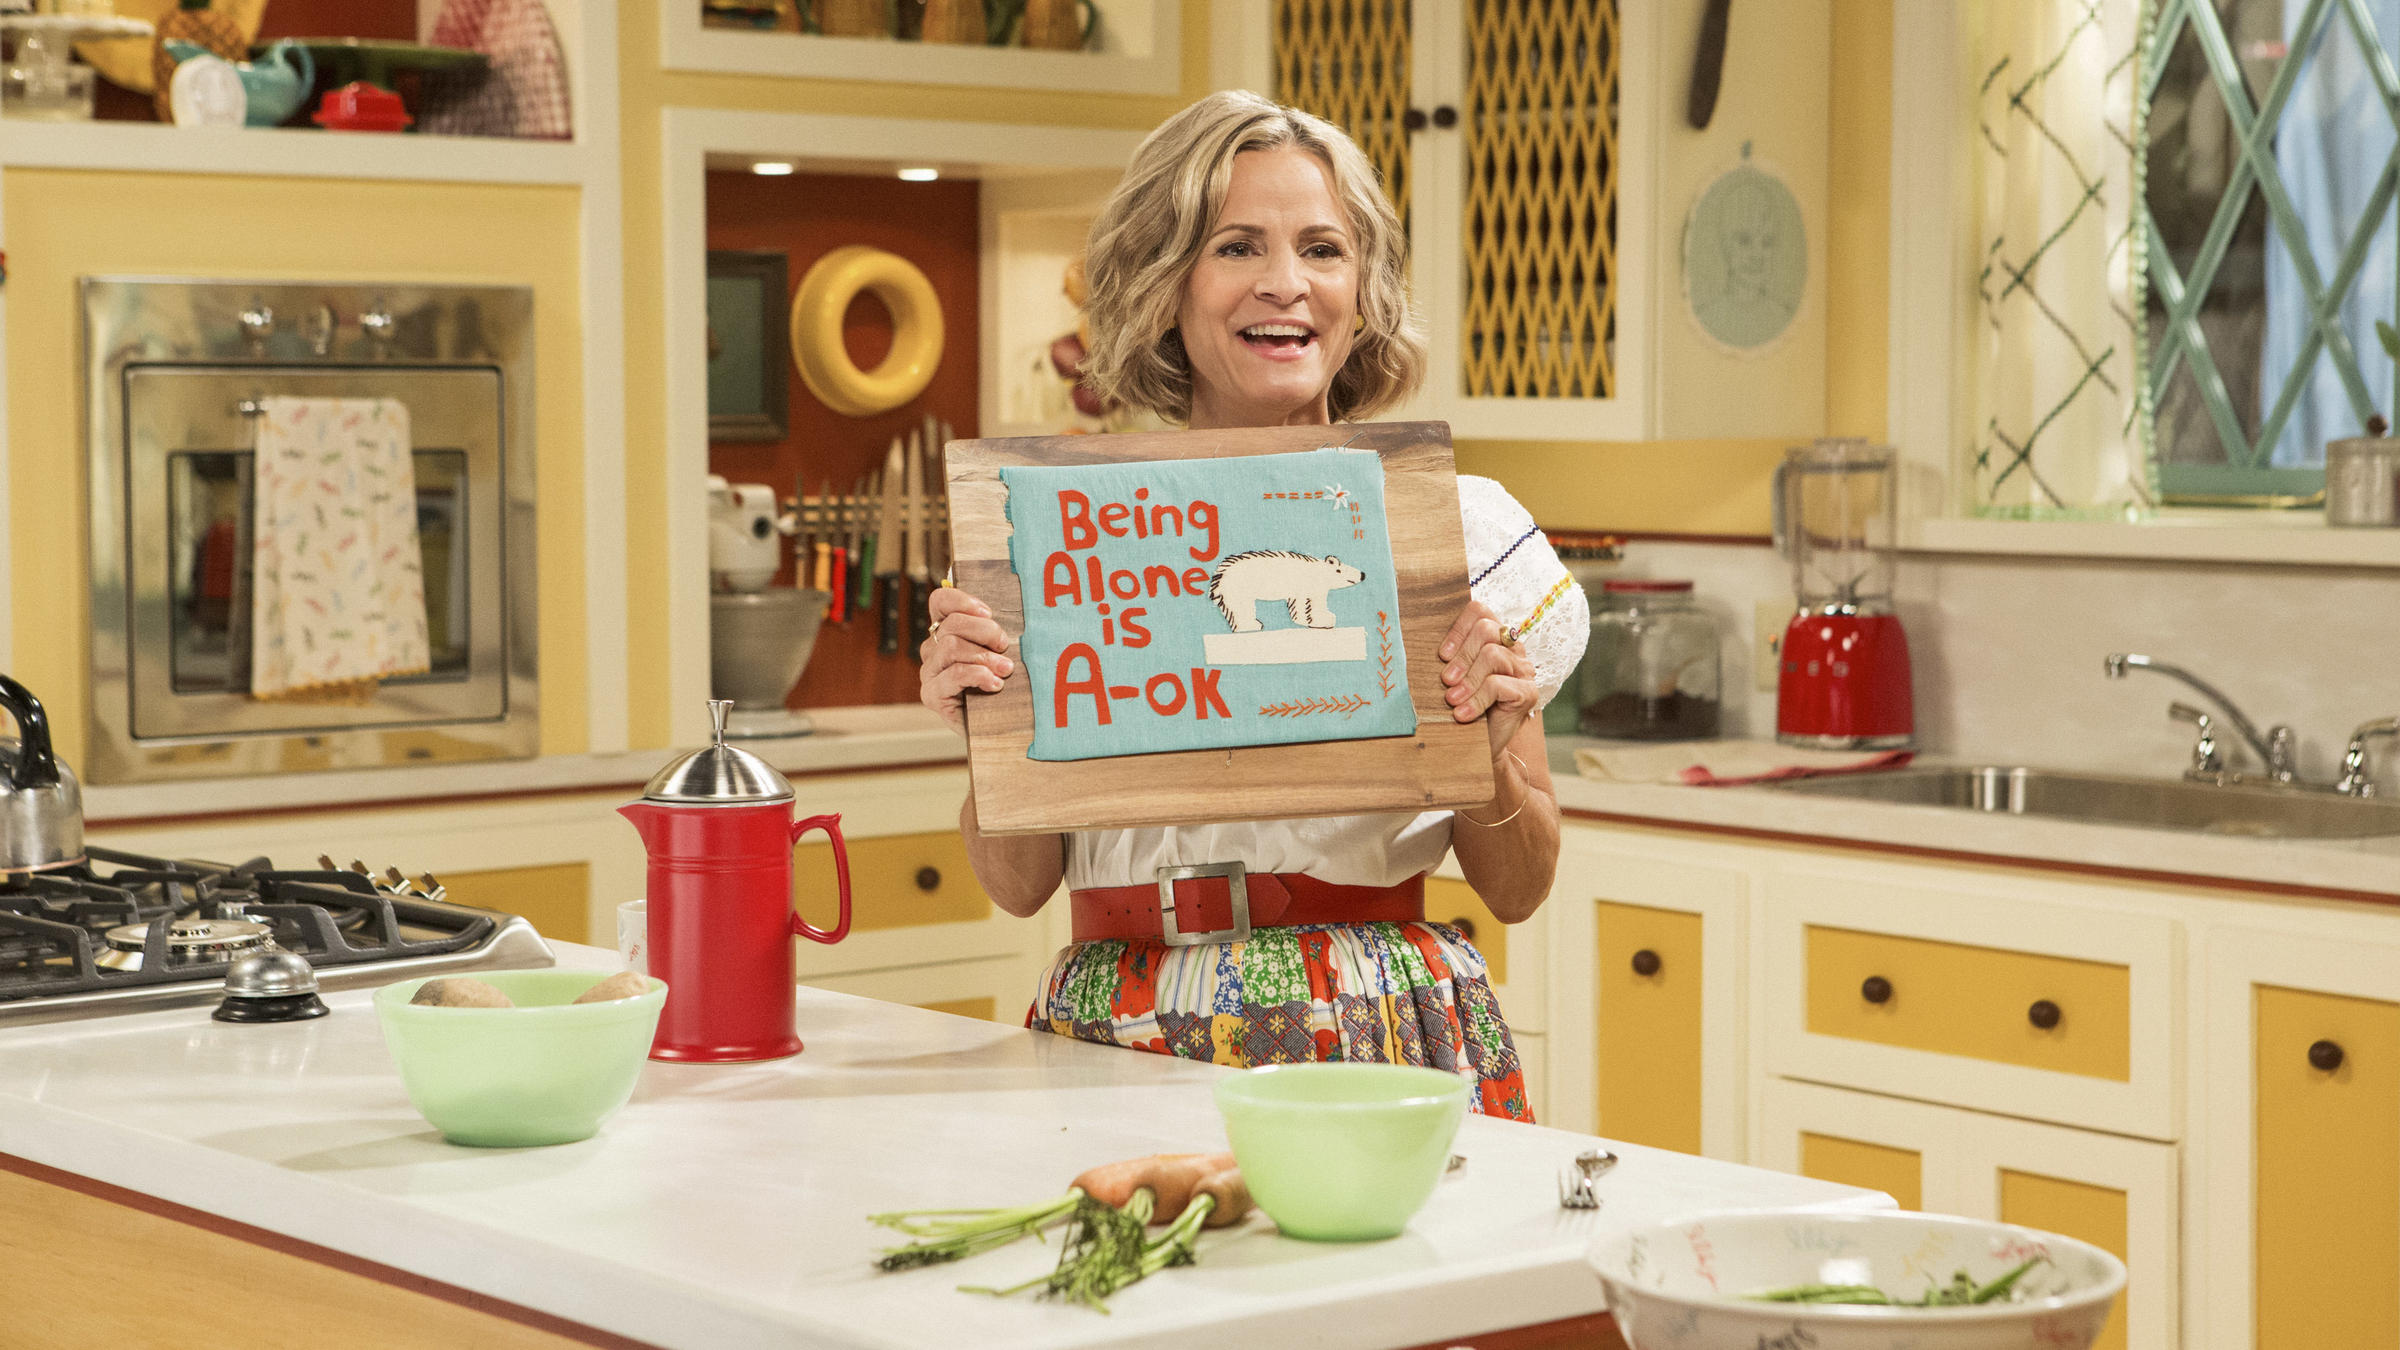 Amy Sedaris Kimmy Schmidt the best hostess gift? a pound of butter, says amy sedaris